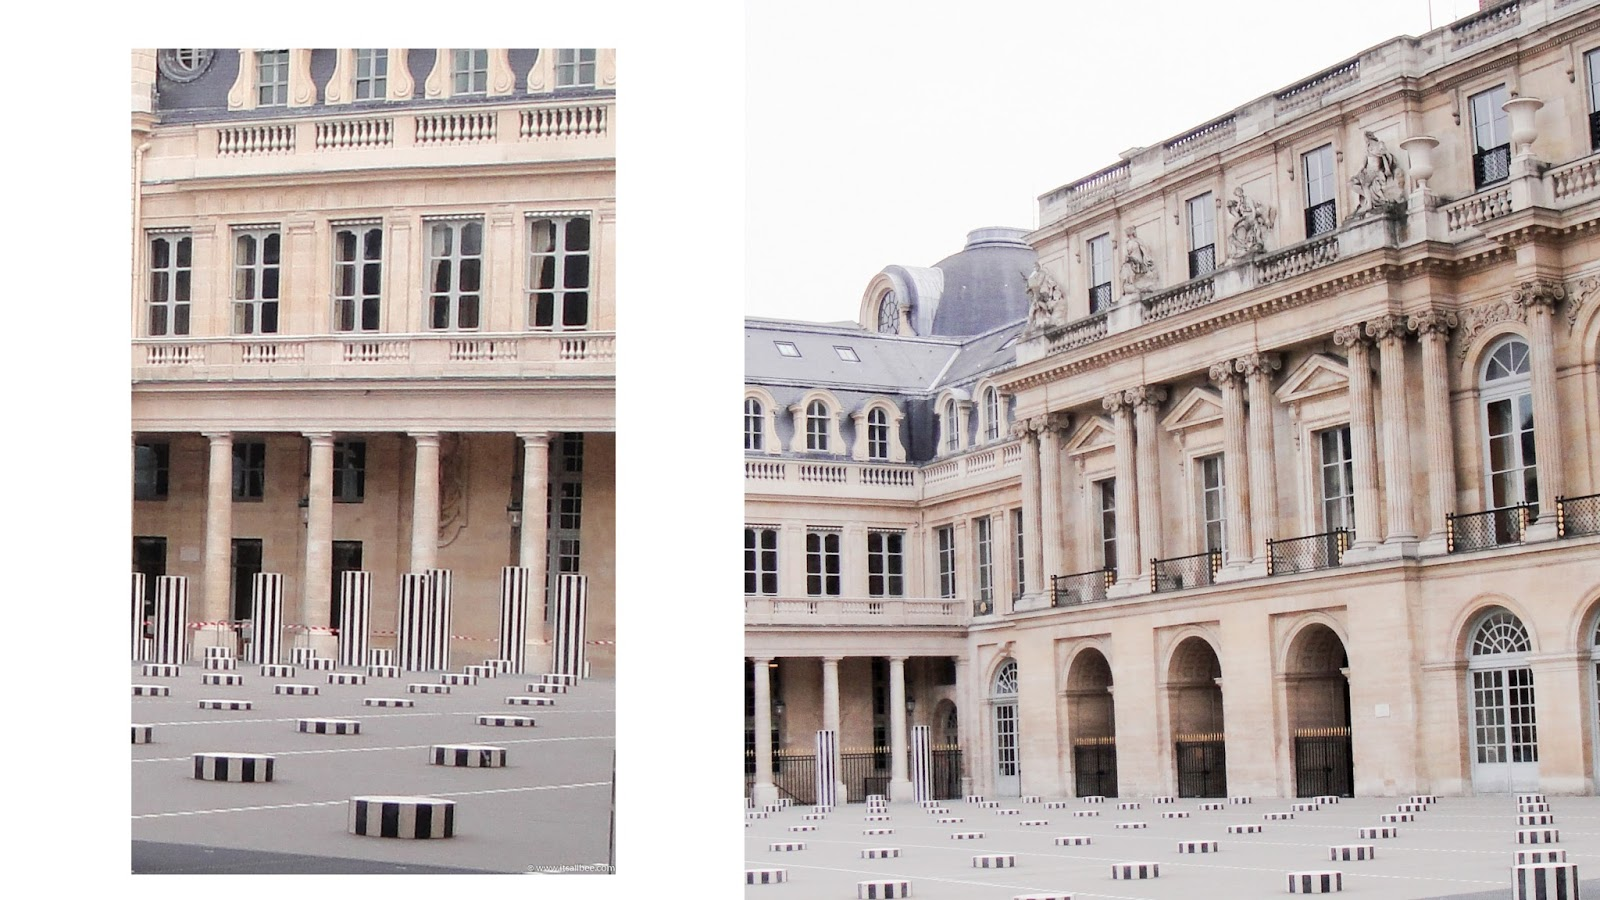 Palais-Royal - Paris - Photo   by Bianca - www.itsallbee.com